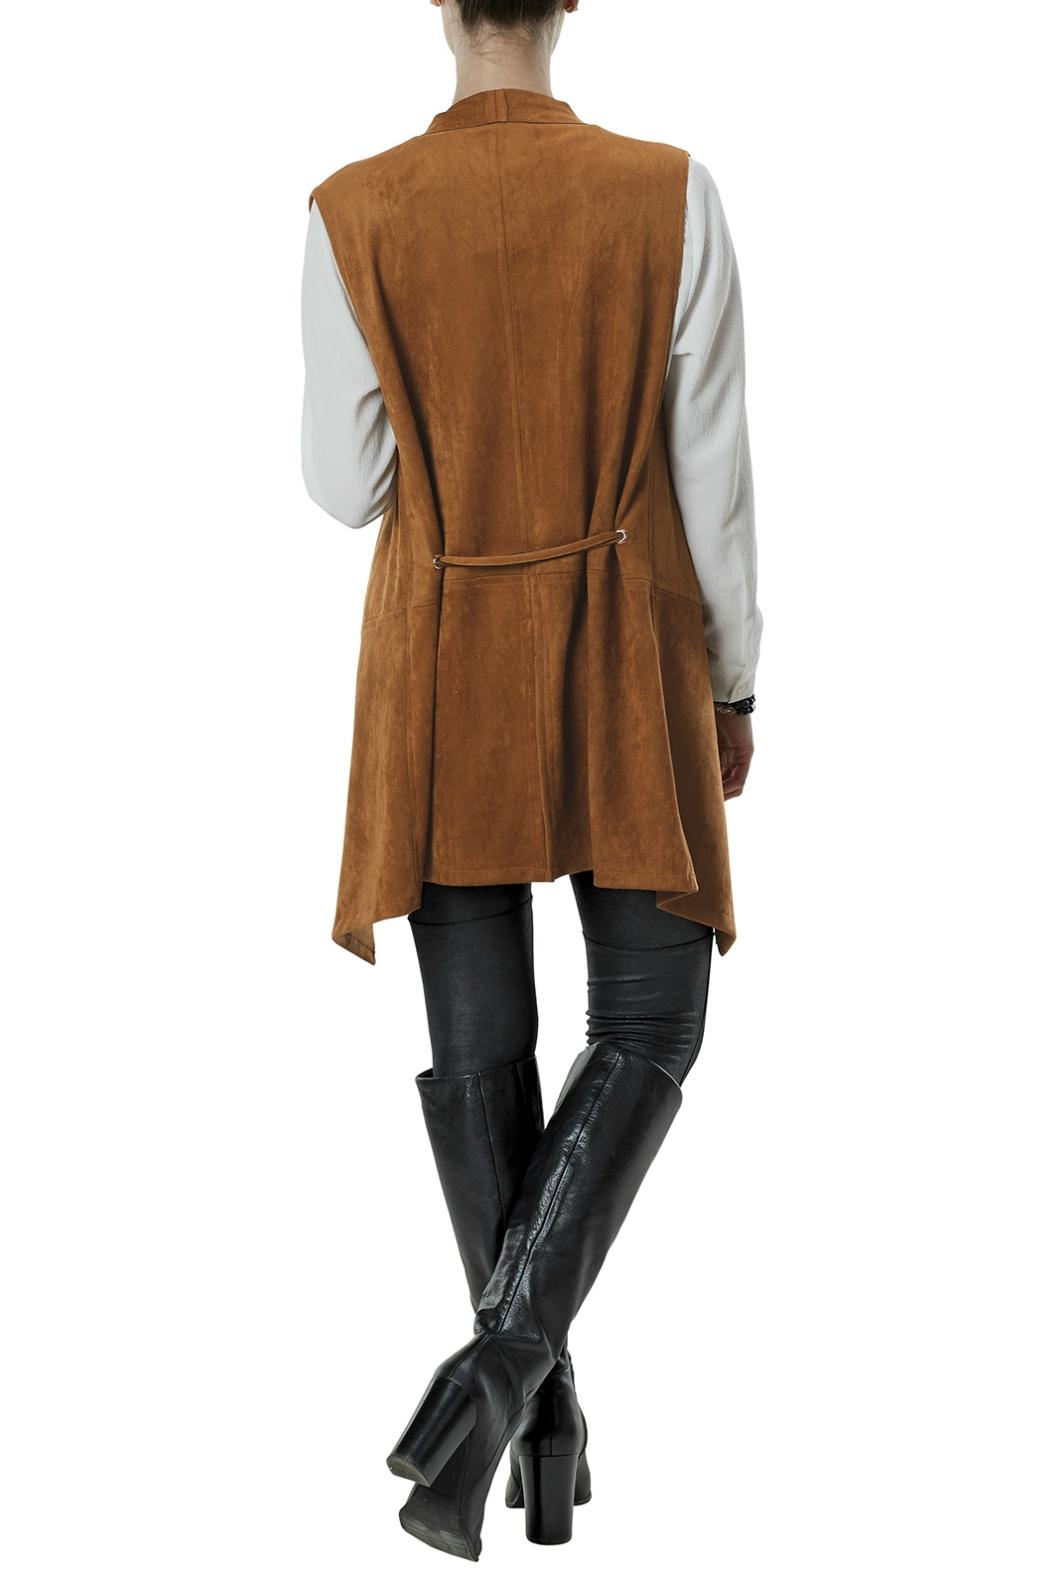 Mud Pie Faux Suede Vest - Front Full Image